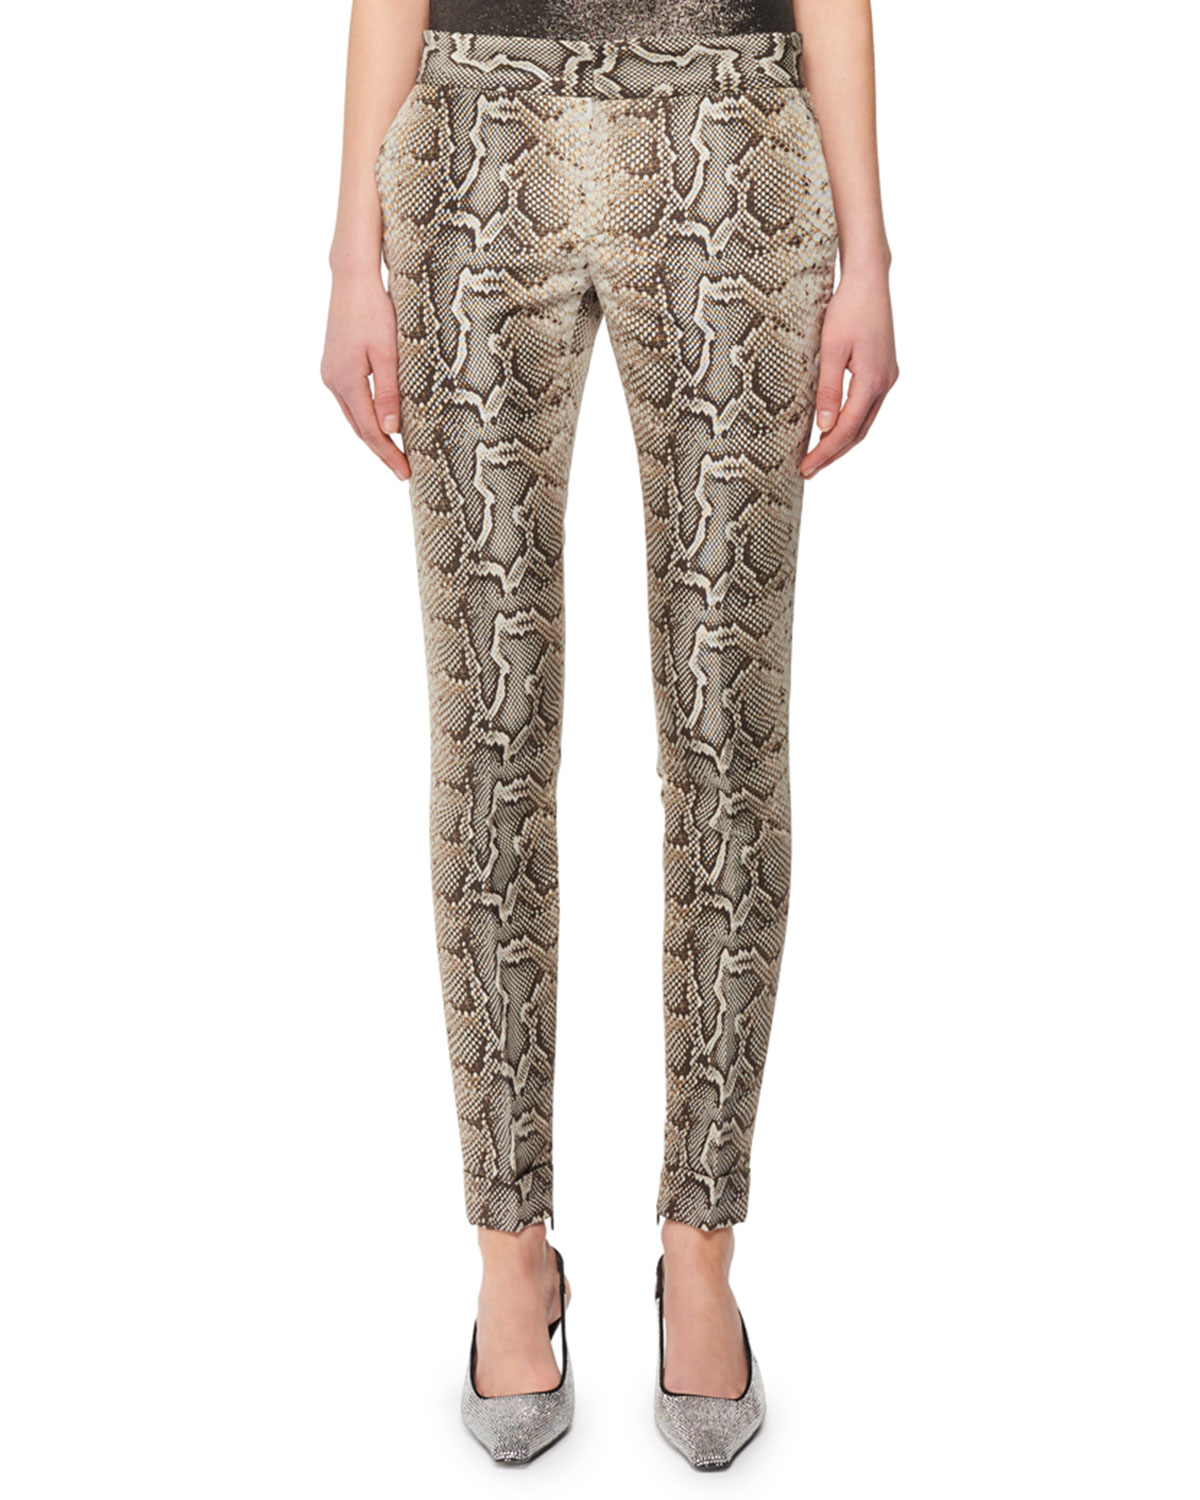 Exact Product: Snake-Print Stretch-Cotton Twill Skinny Pants, Brand: Tom Ford, Available on: neimanmarcus.com, Price: $2200